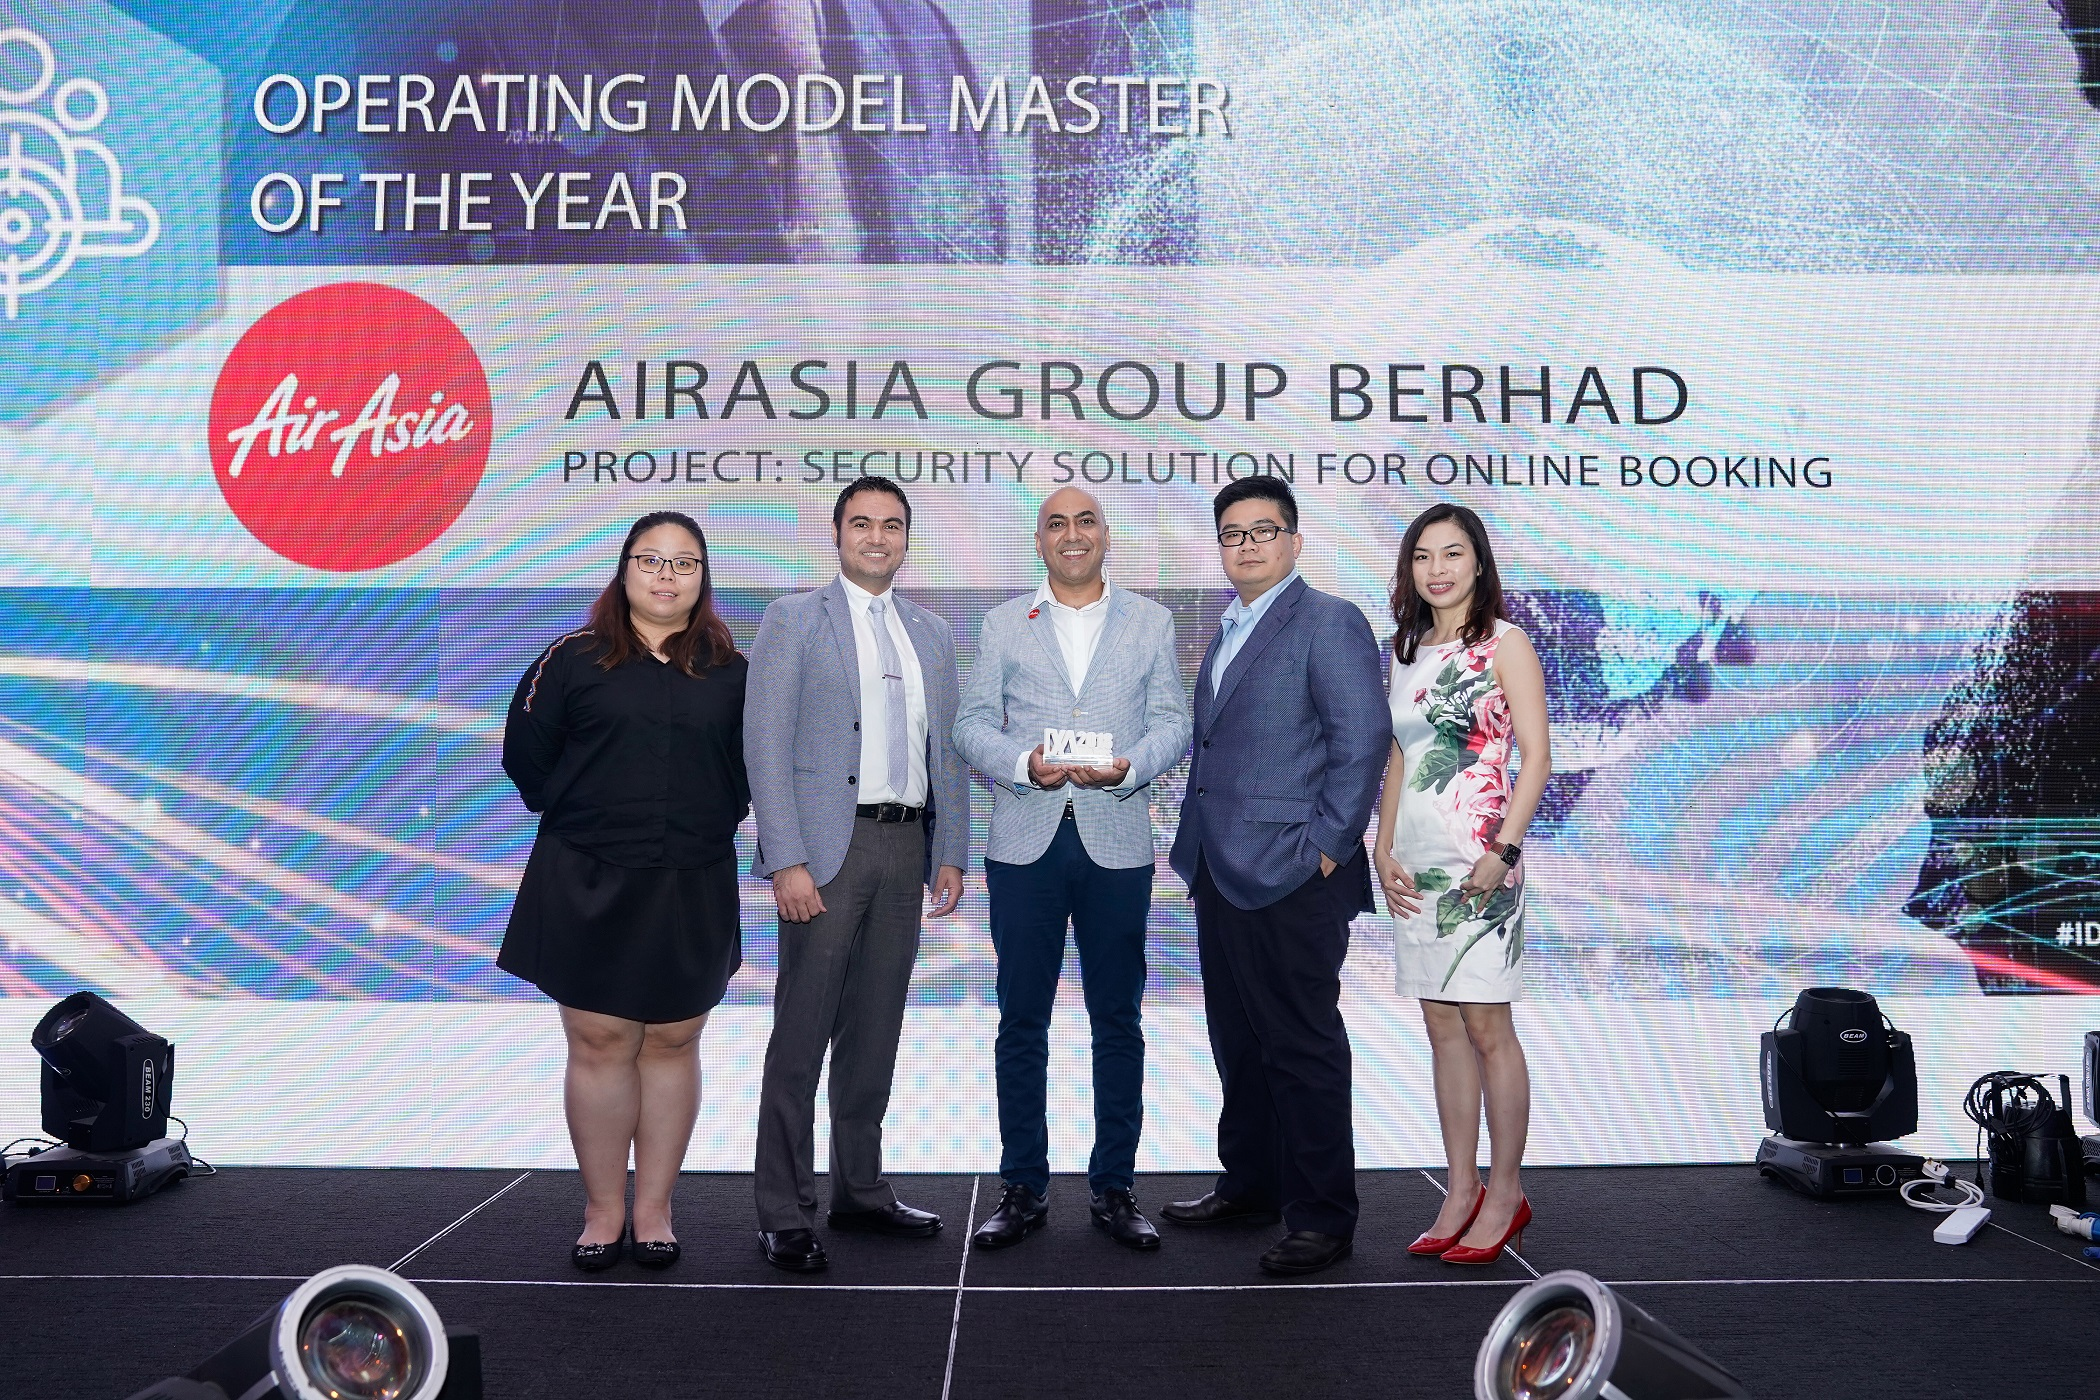 Photo Caption: (From left) AirAsia Web Fraud Analyst Michelle Lee, IDC Asean Managing Director Sudev Bangah, AirAsia Head of Project Management Office (ICT) Jaspal Singh, Alibaba Cloud Malaysia and Thailand General Manager Kenny Tan, Alibaba Cloud Malaysia Business Development Manager Jyn Tay.